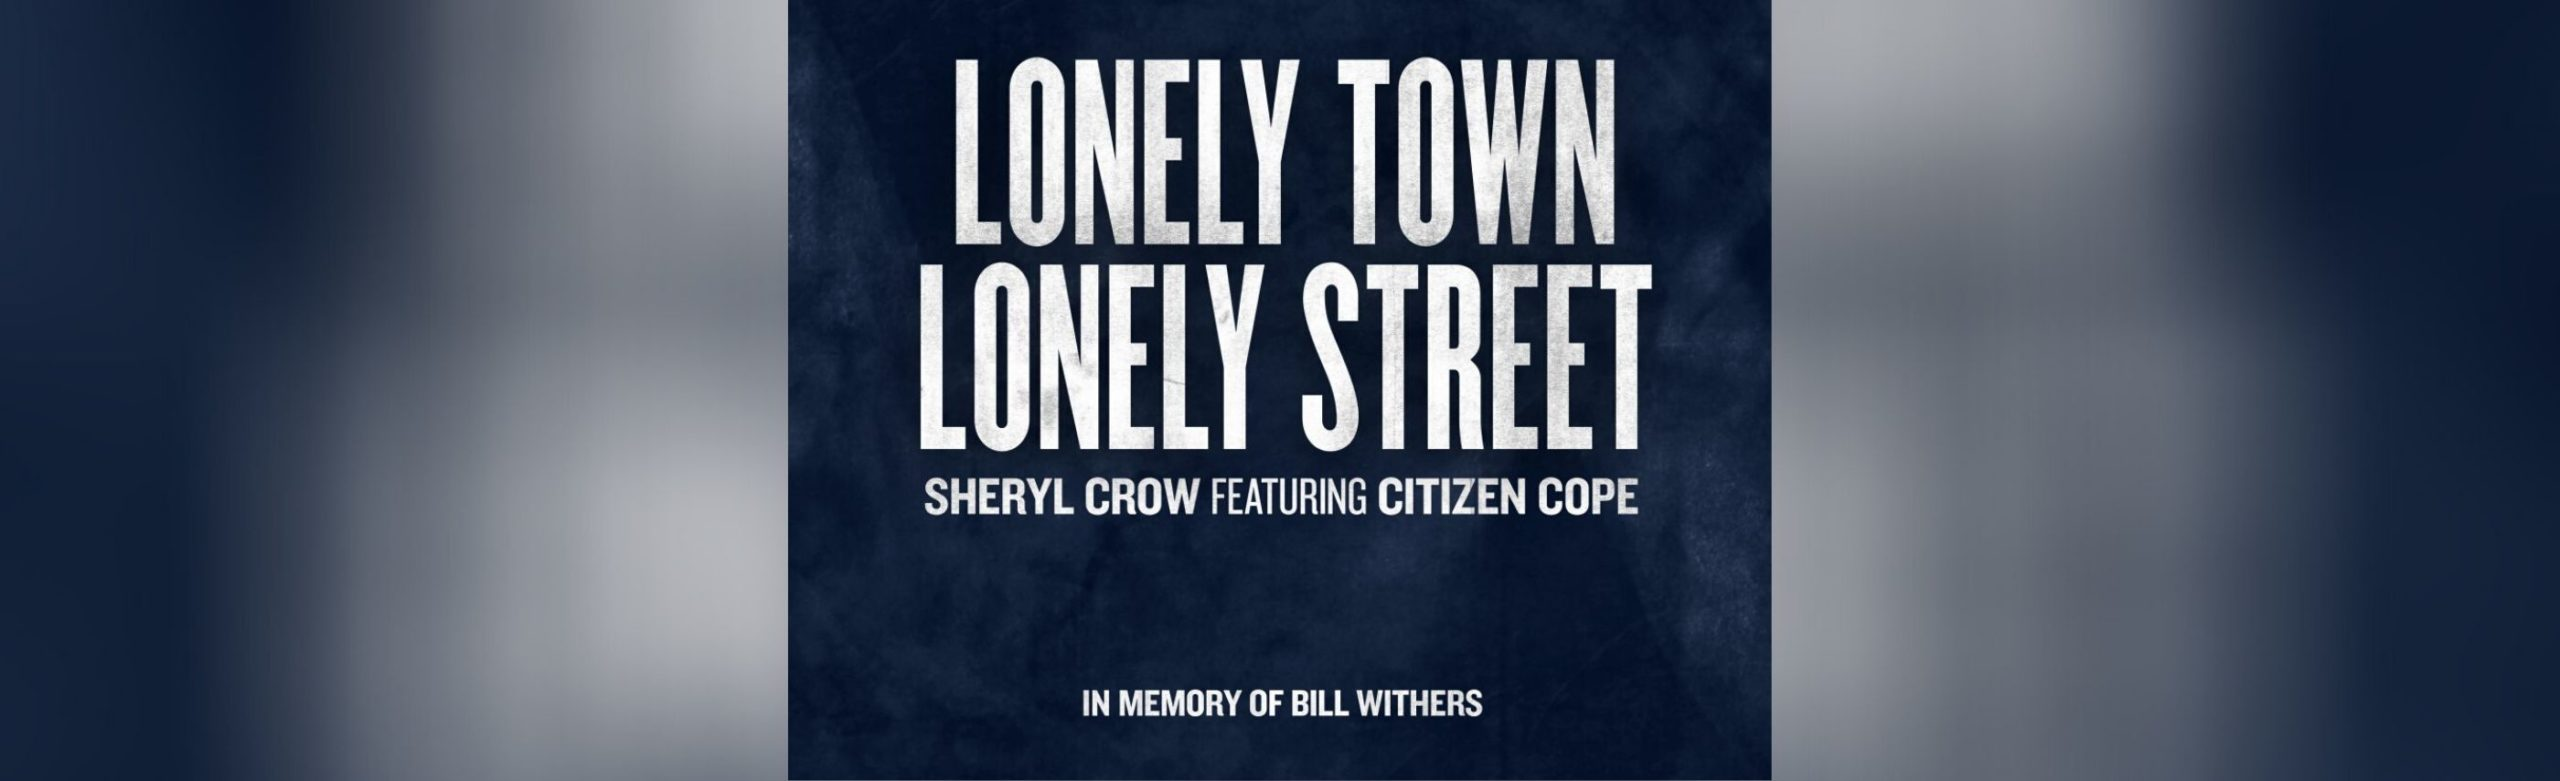 """Sheryl Crow and Citizen Cope Pay Homage to Bill Withers on """"Lonely Town, Lonely Street"""" Image"""